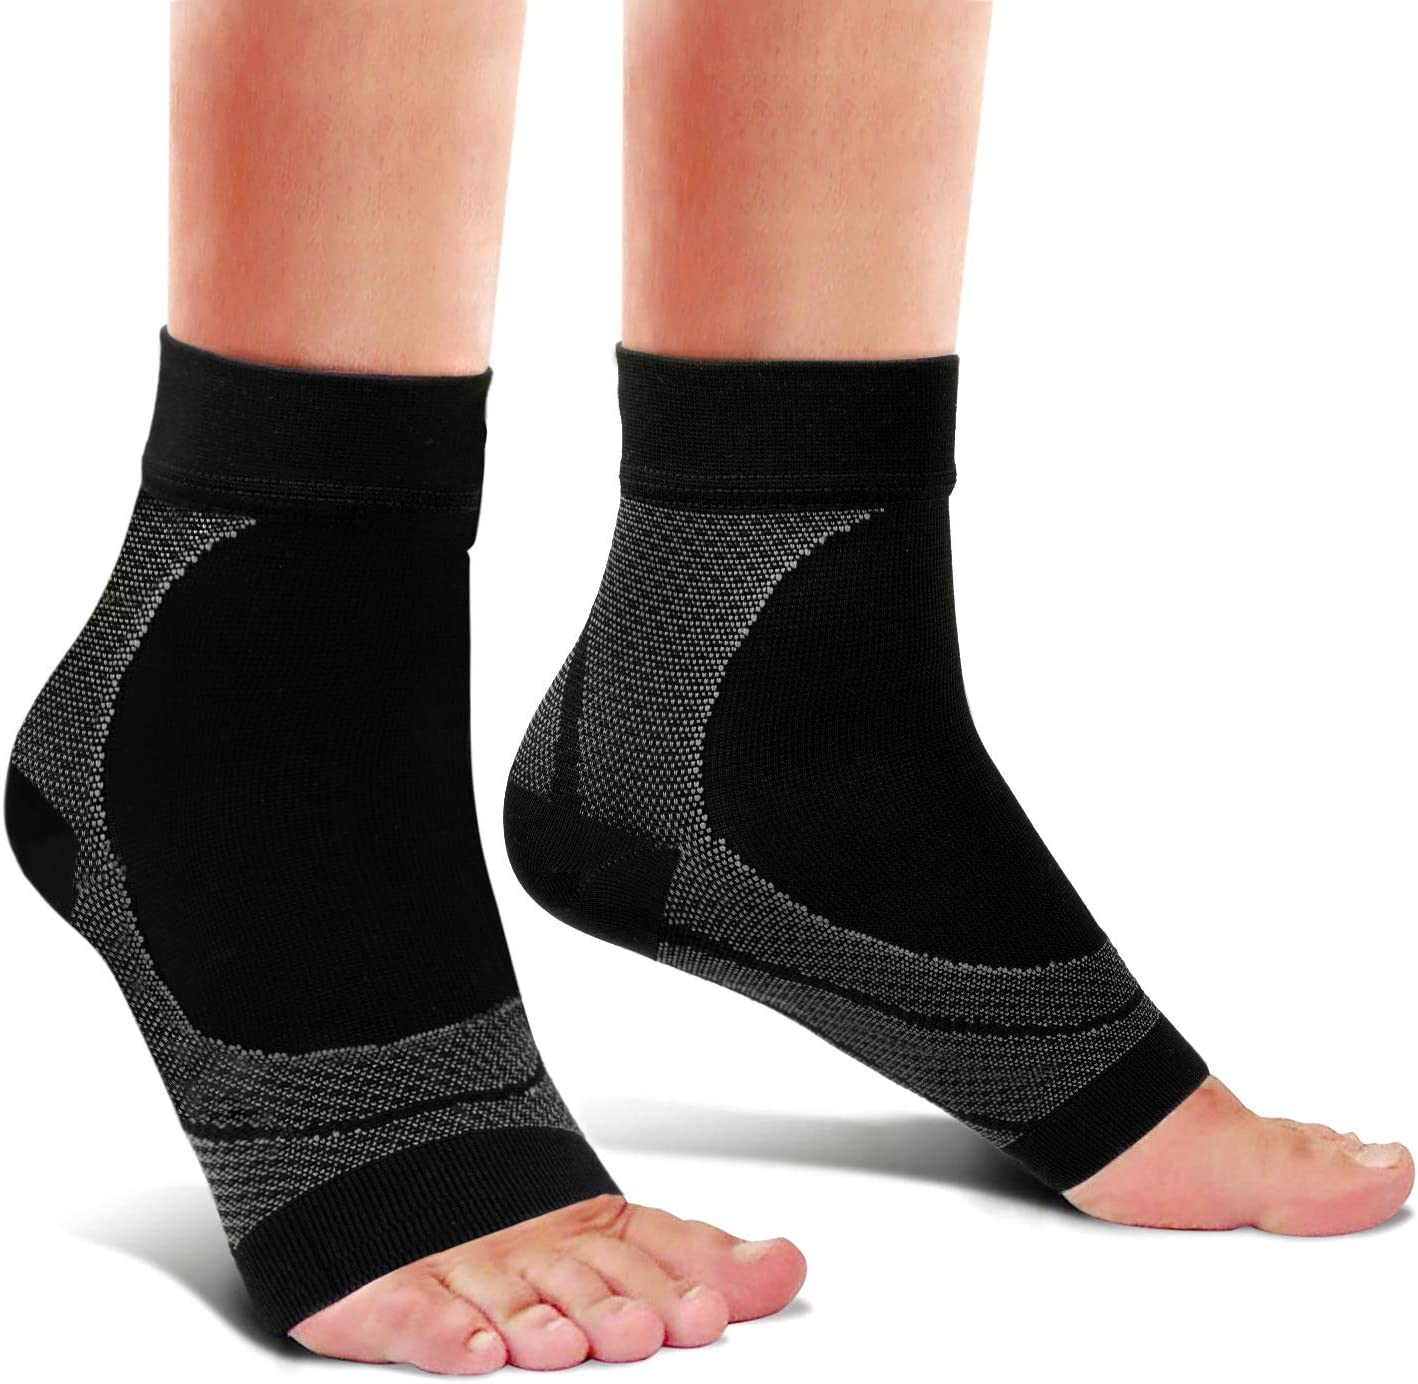 Orthotic Arch Support Plantar Fasciitis Brace Sleeves Support Sports Protection